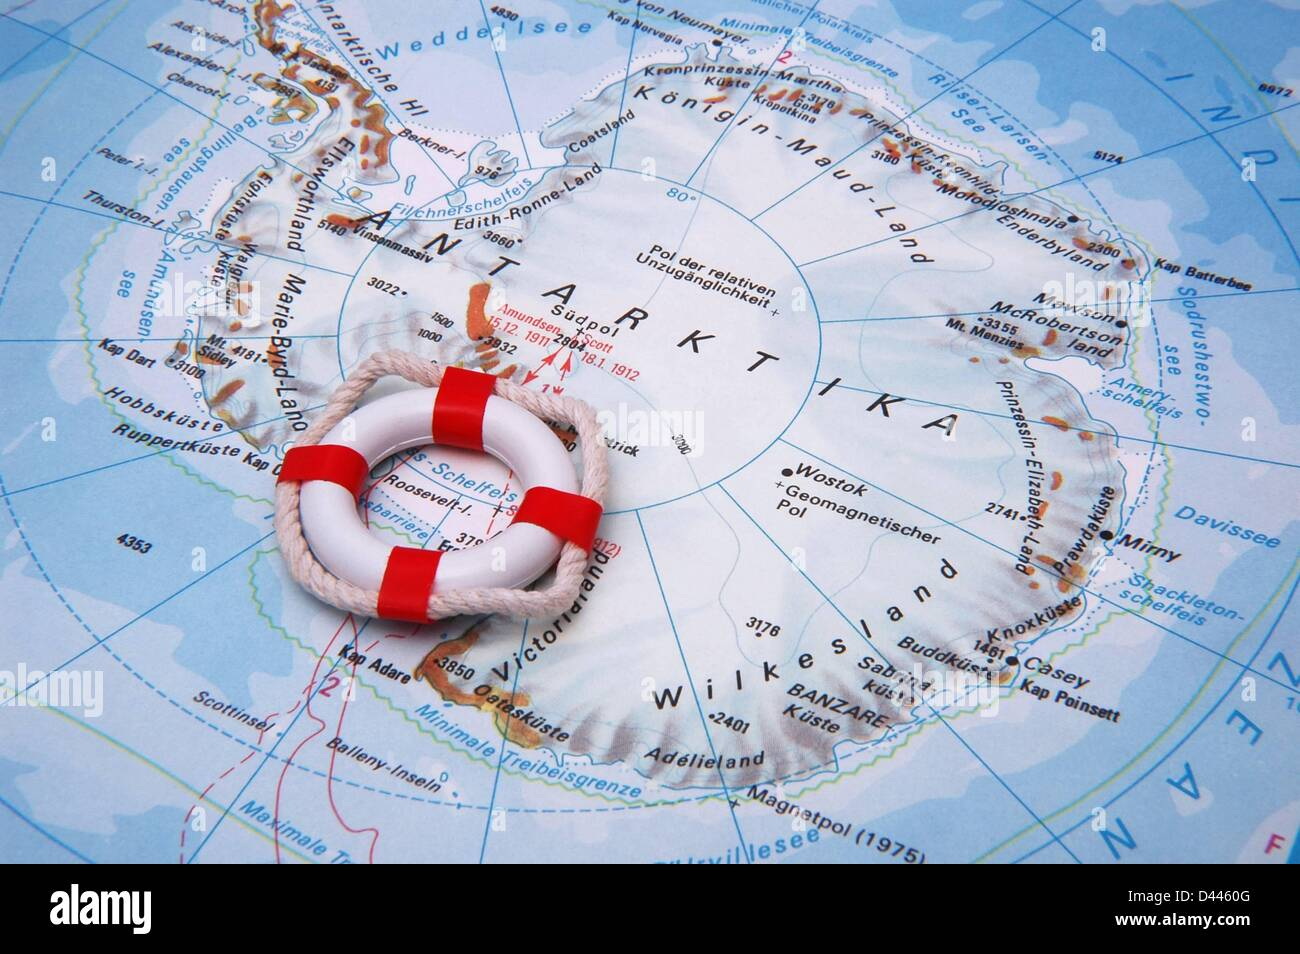 Illustration - A miniature safety buoy is pictured lieing on the south pole of a world map in Berlin, Germany, 22 December 2007. Photo: Berliner Verlag/S.Steinach Stock Photo